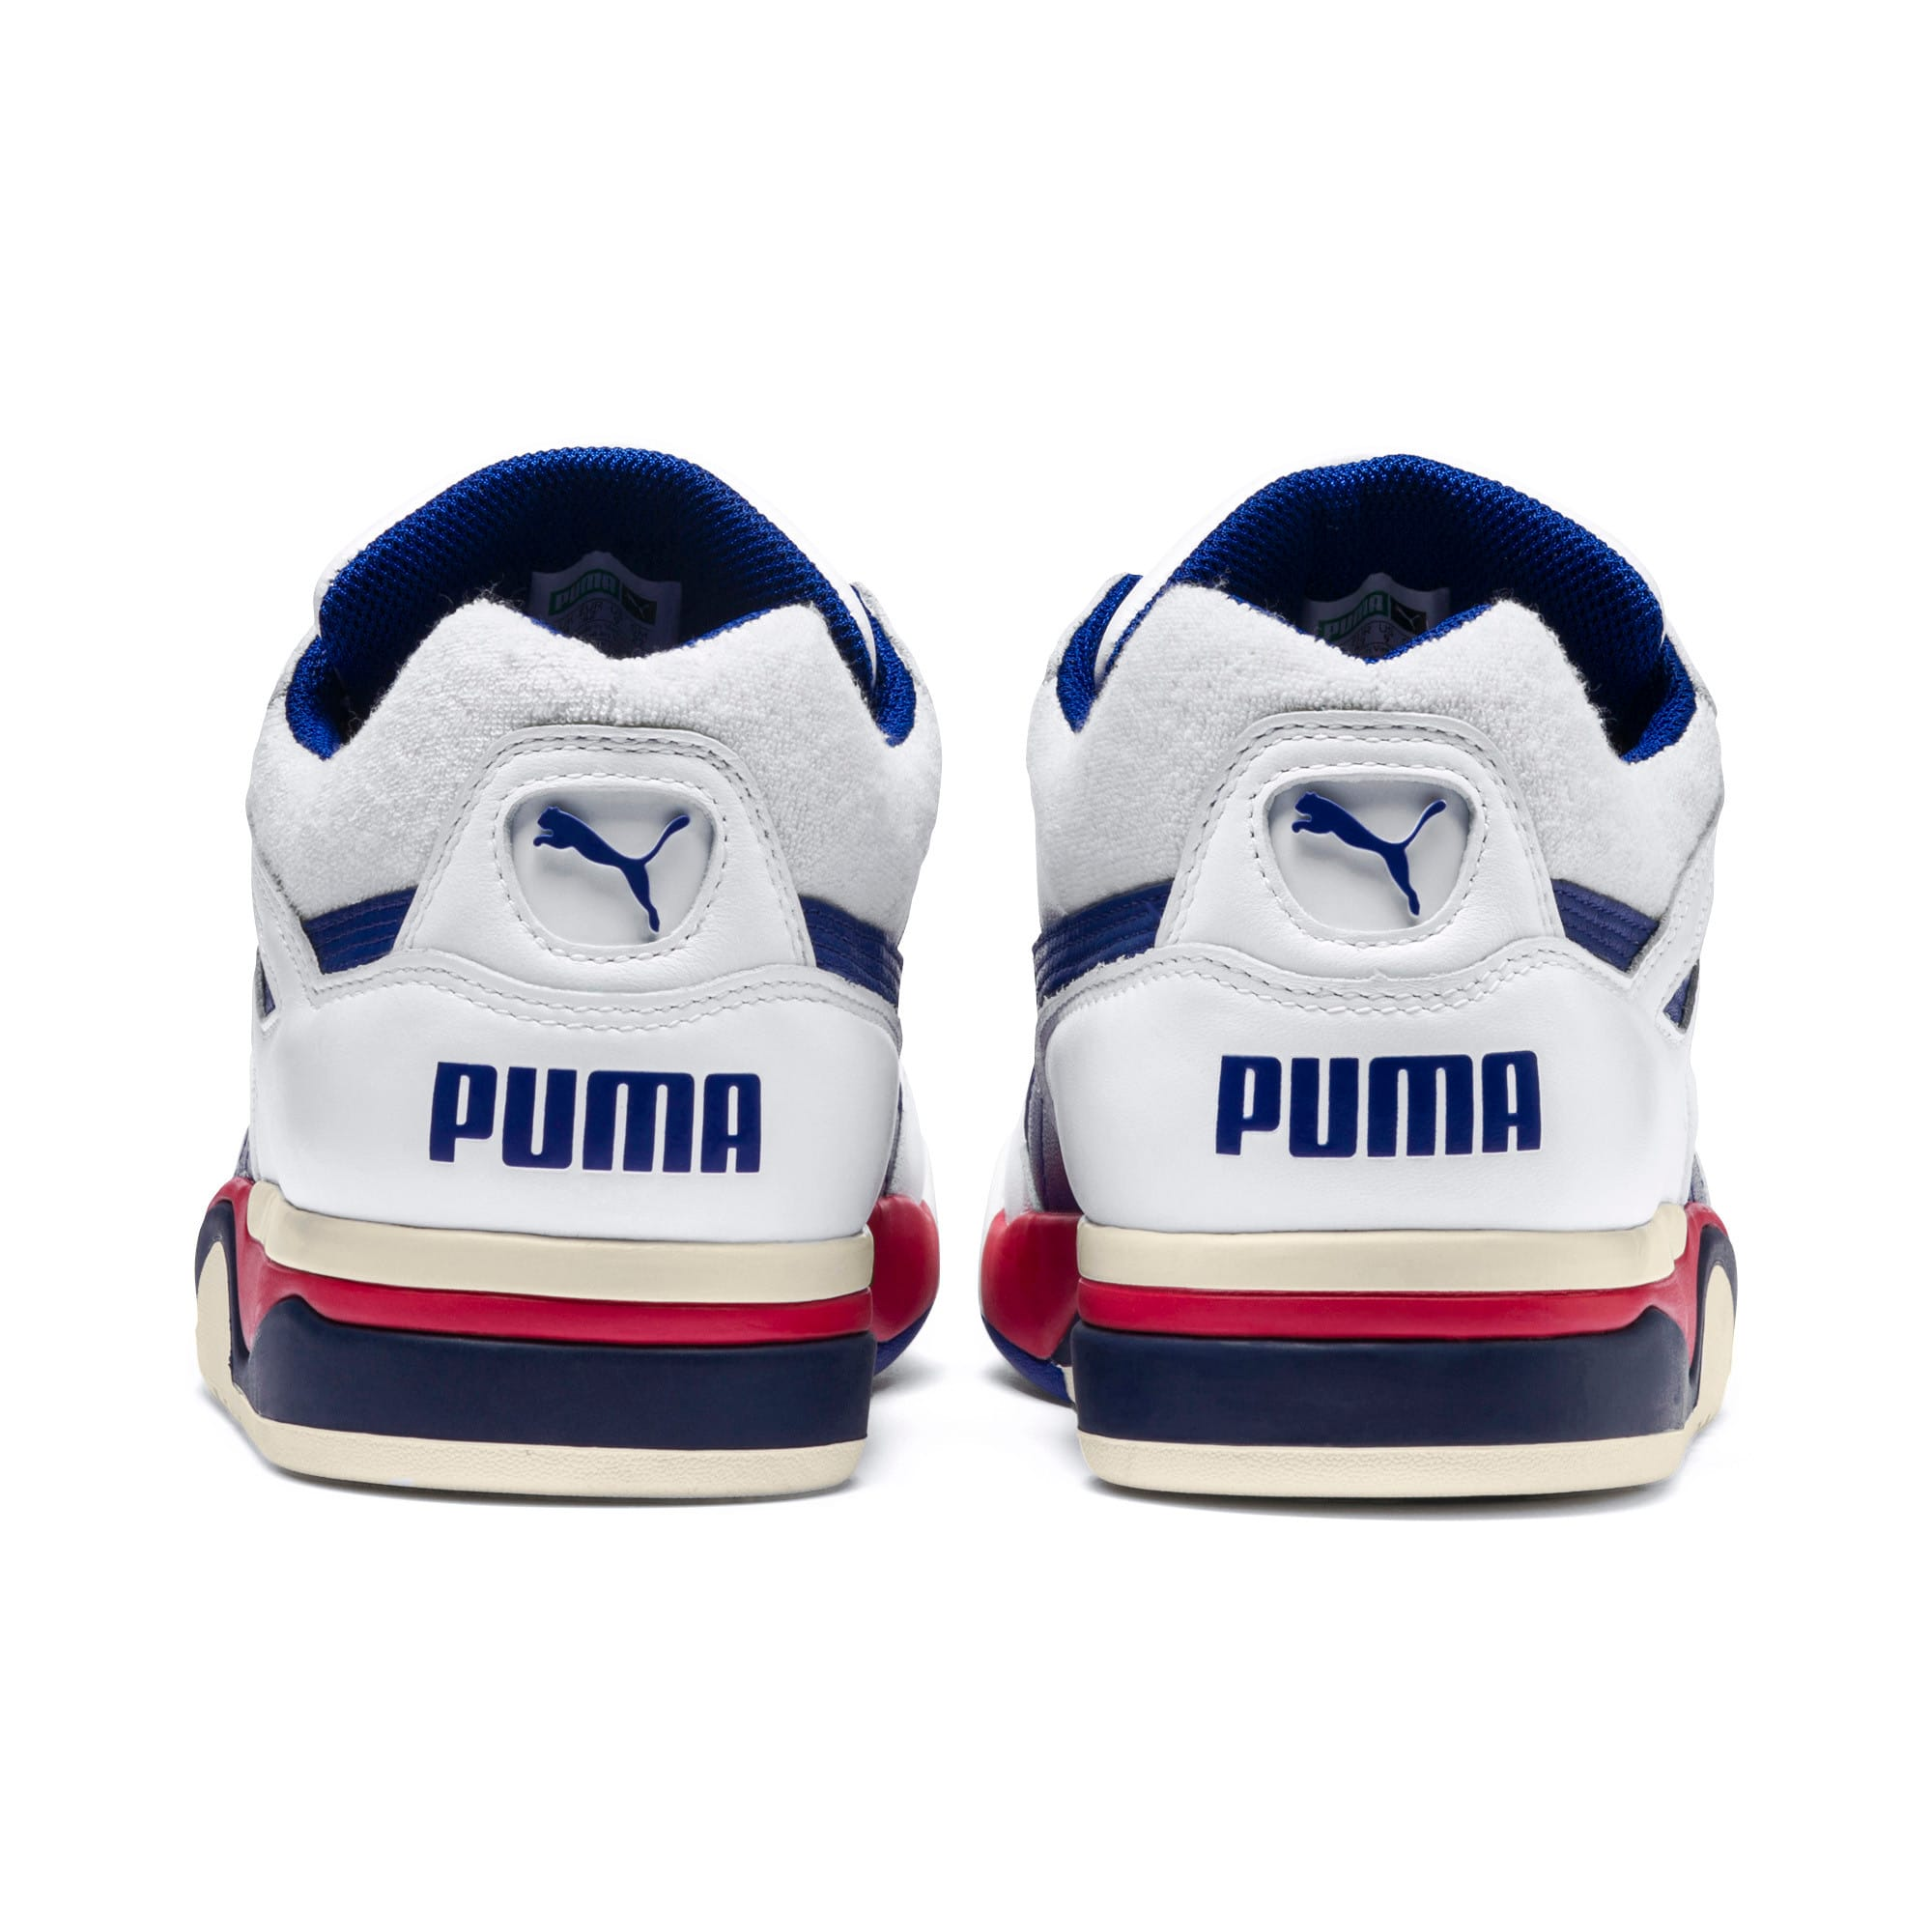 Thumbnail 3 of Palace Guard OG Sneakers, Puma White-Surf The Web-Red, medium